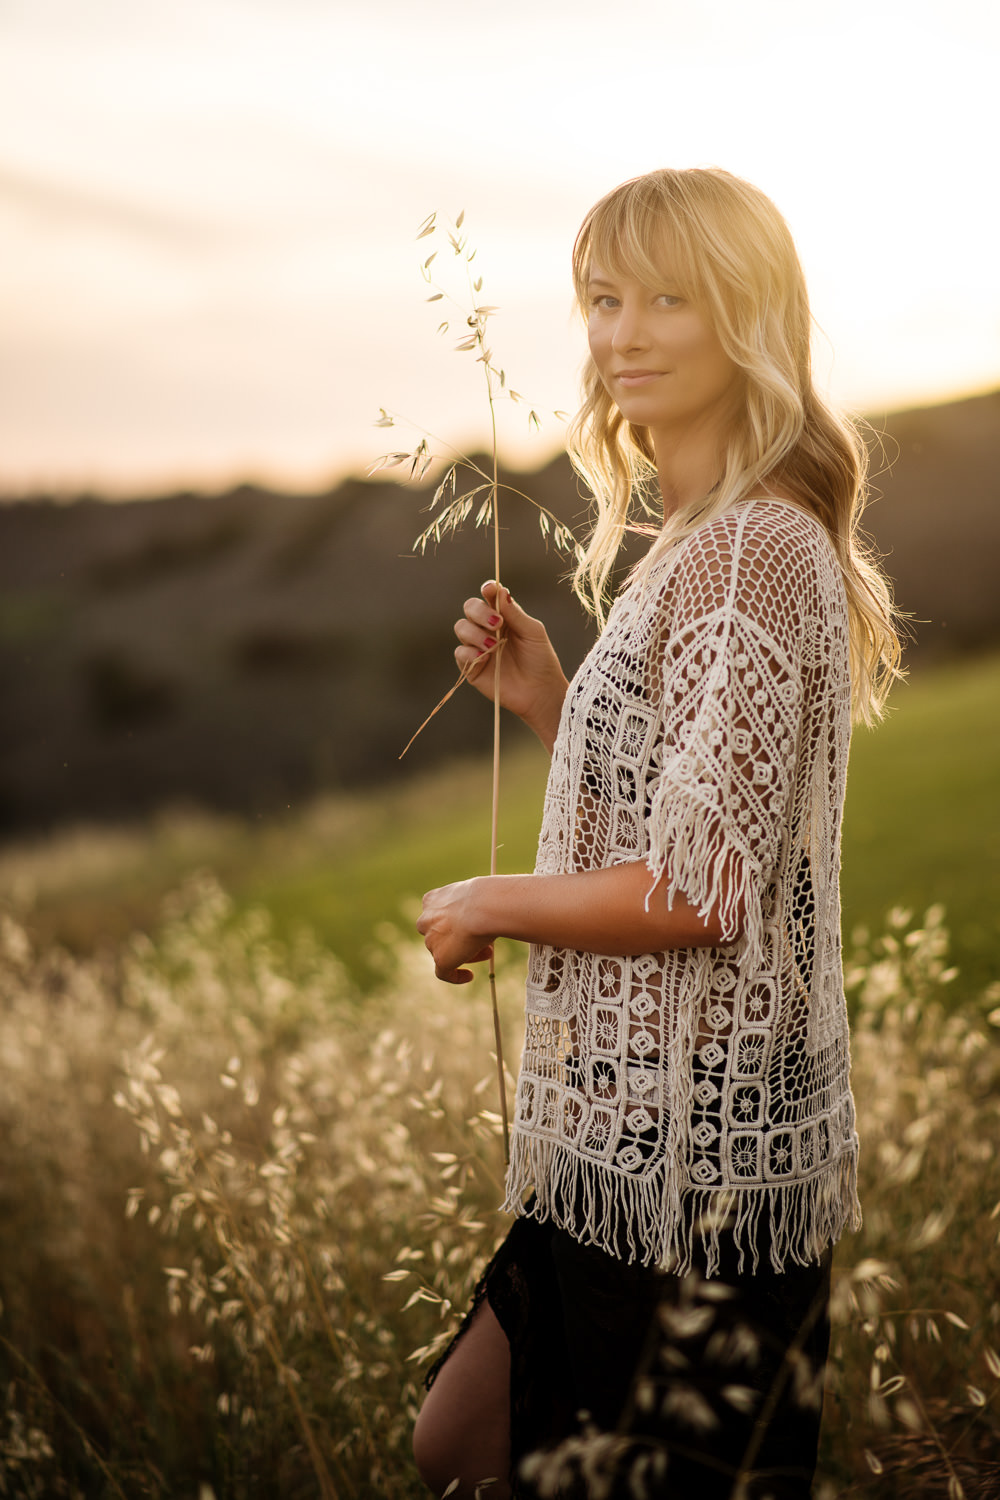 f27-Photography-ojai-valley-sulpher-mountain-golden-field-sunset-portrait